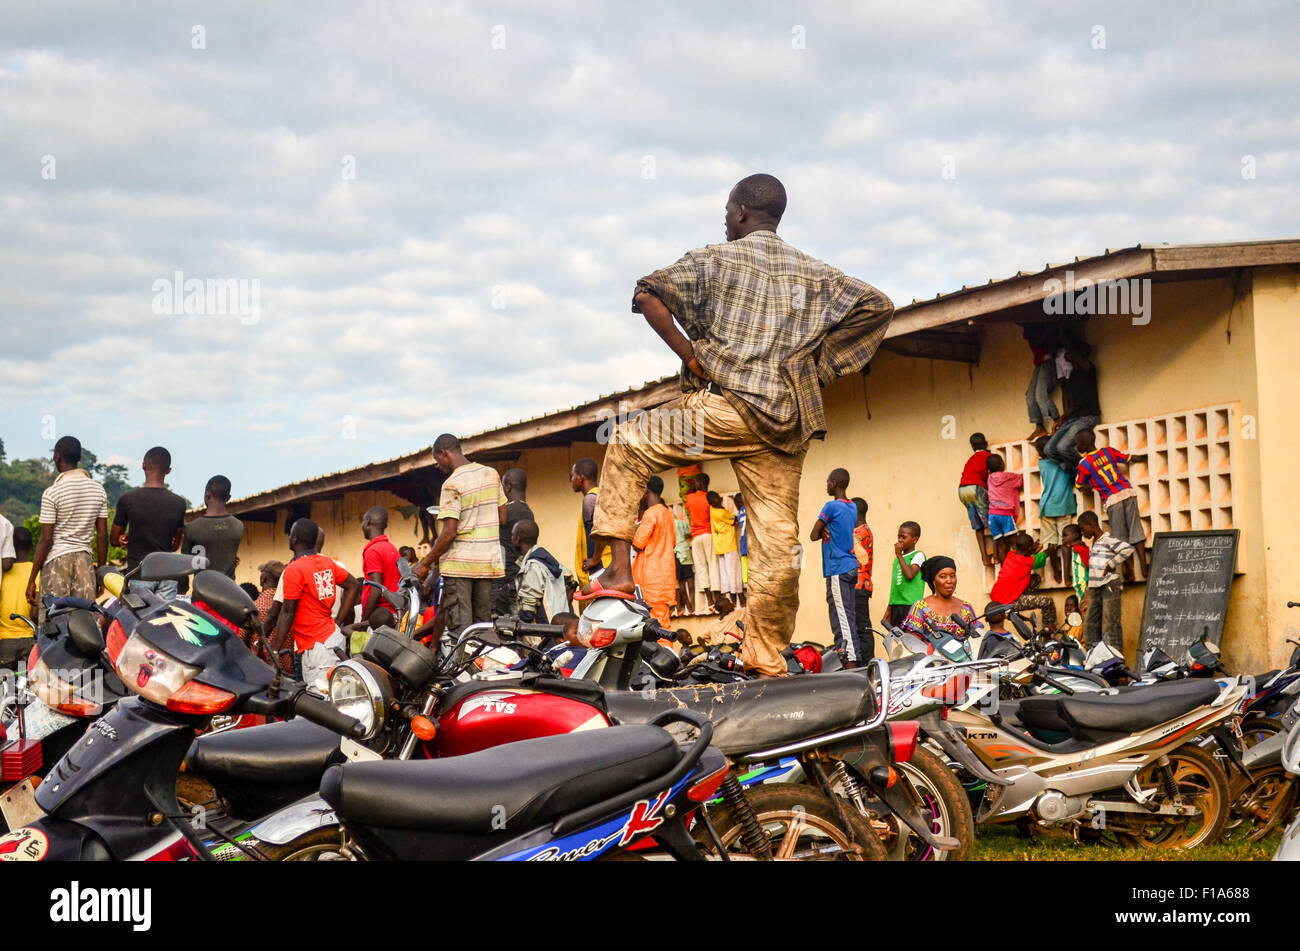 Crowd watching a football game from their motorbikes in Man, Ivory Coast - Stock Image